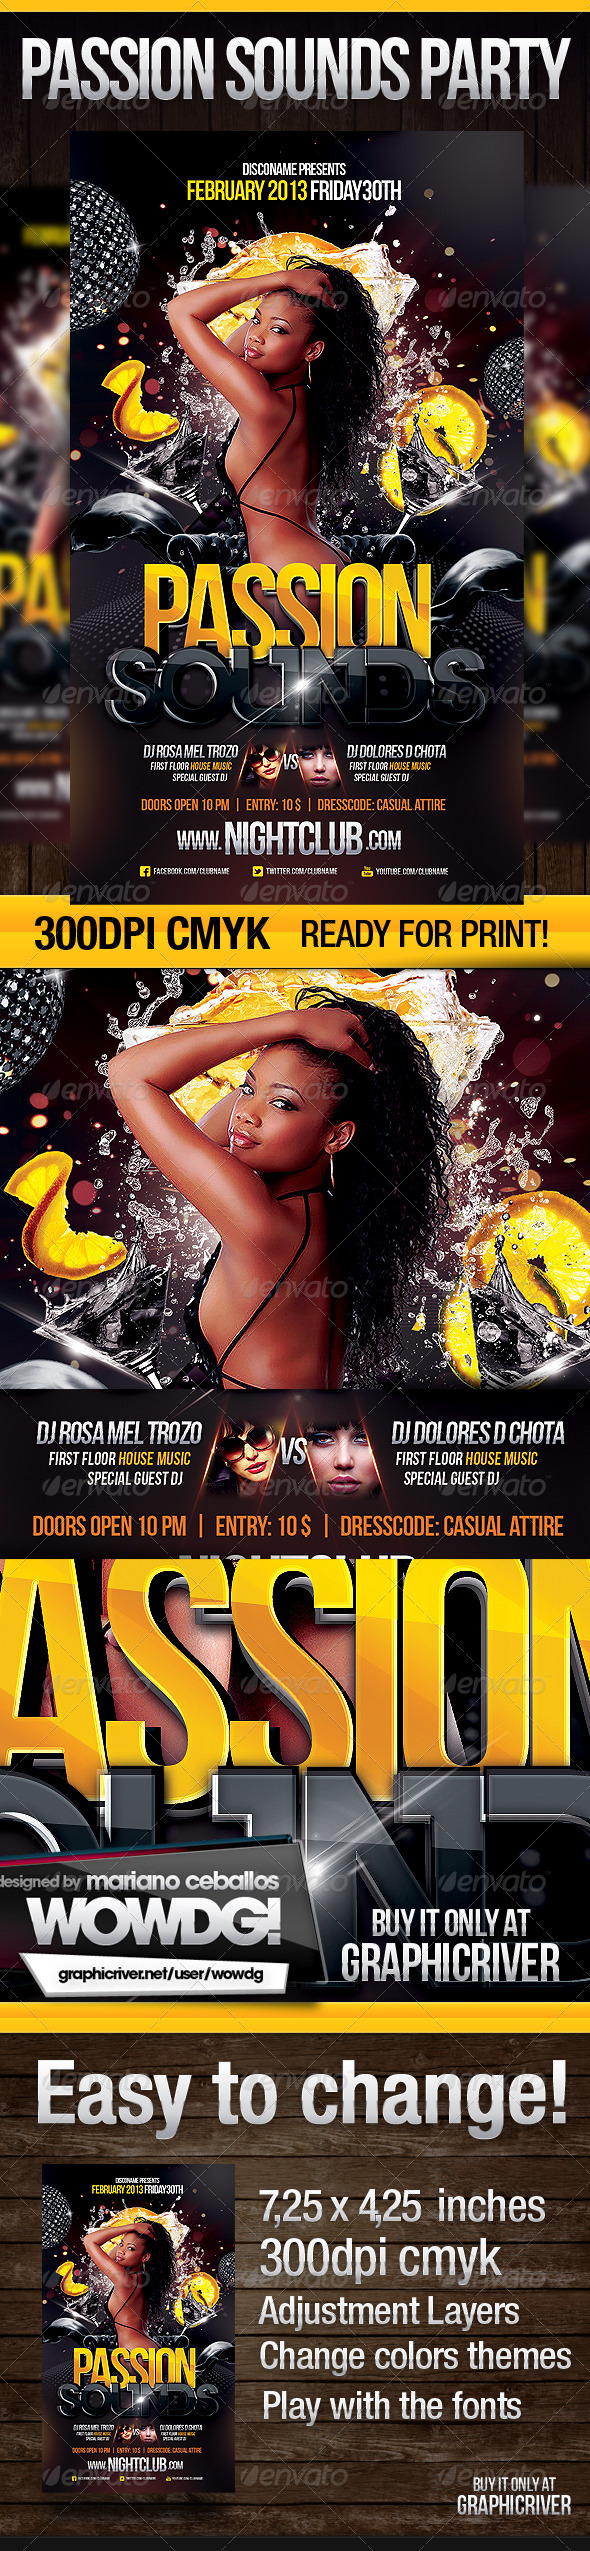 Passion Sounds Party Flyer - Clubs & Parties Events